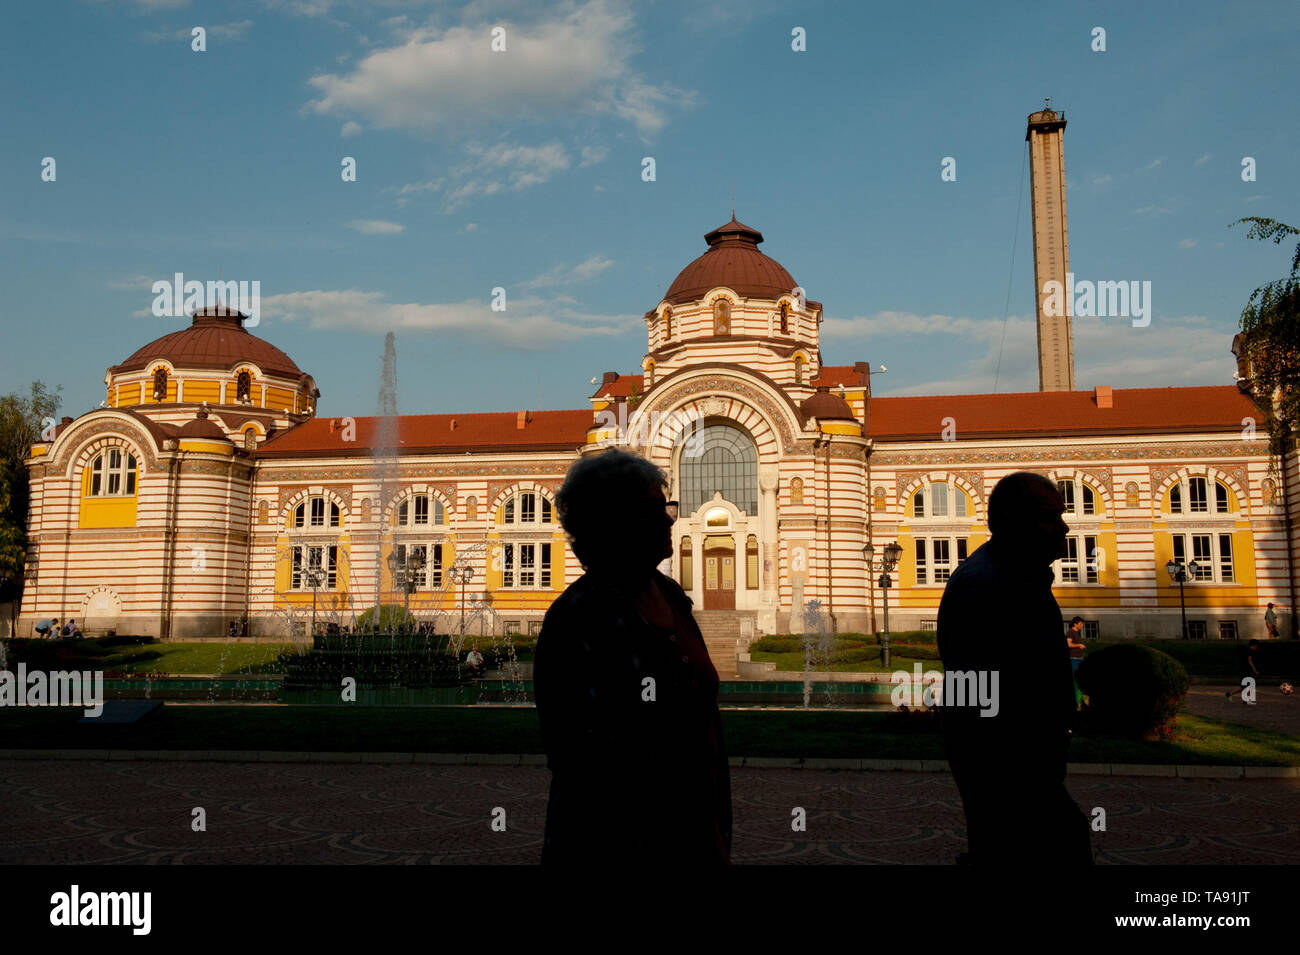 The regional history museum, Sofia, Bulgaria. Bulgaria with an ageing population is the fastest shrinking country in Europe. - Stock Image